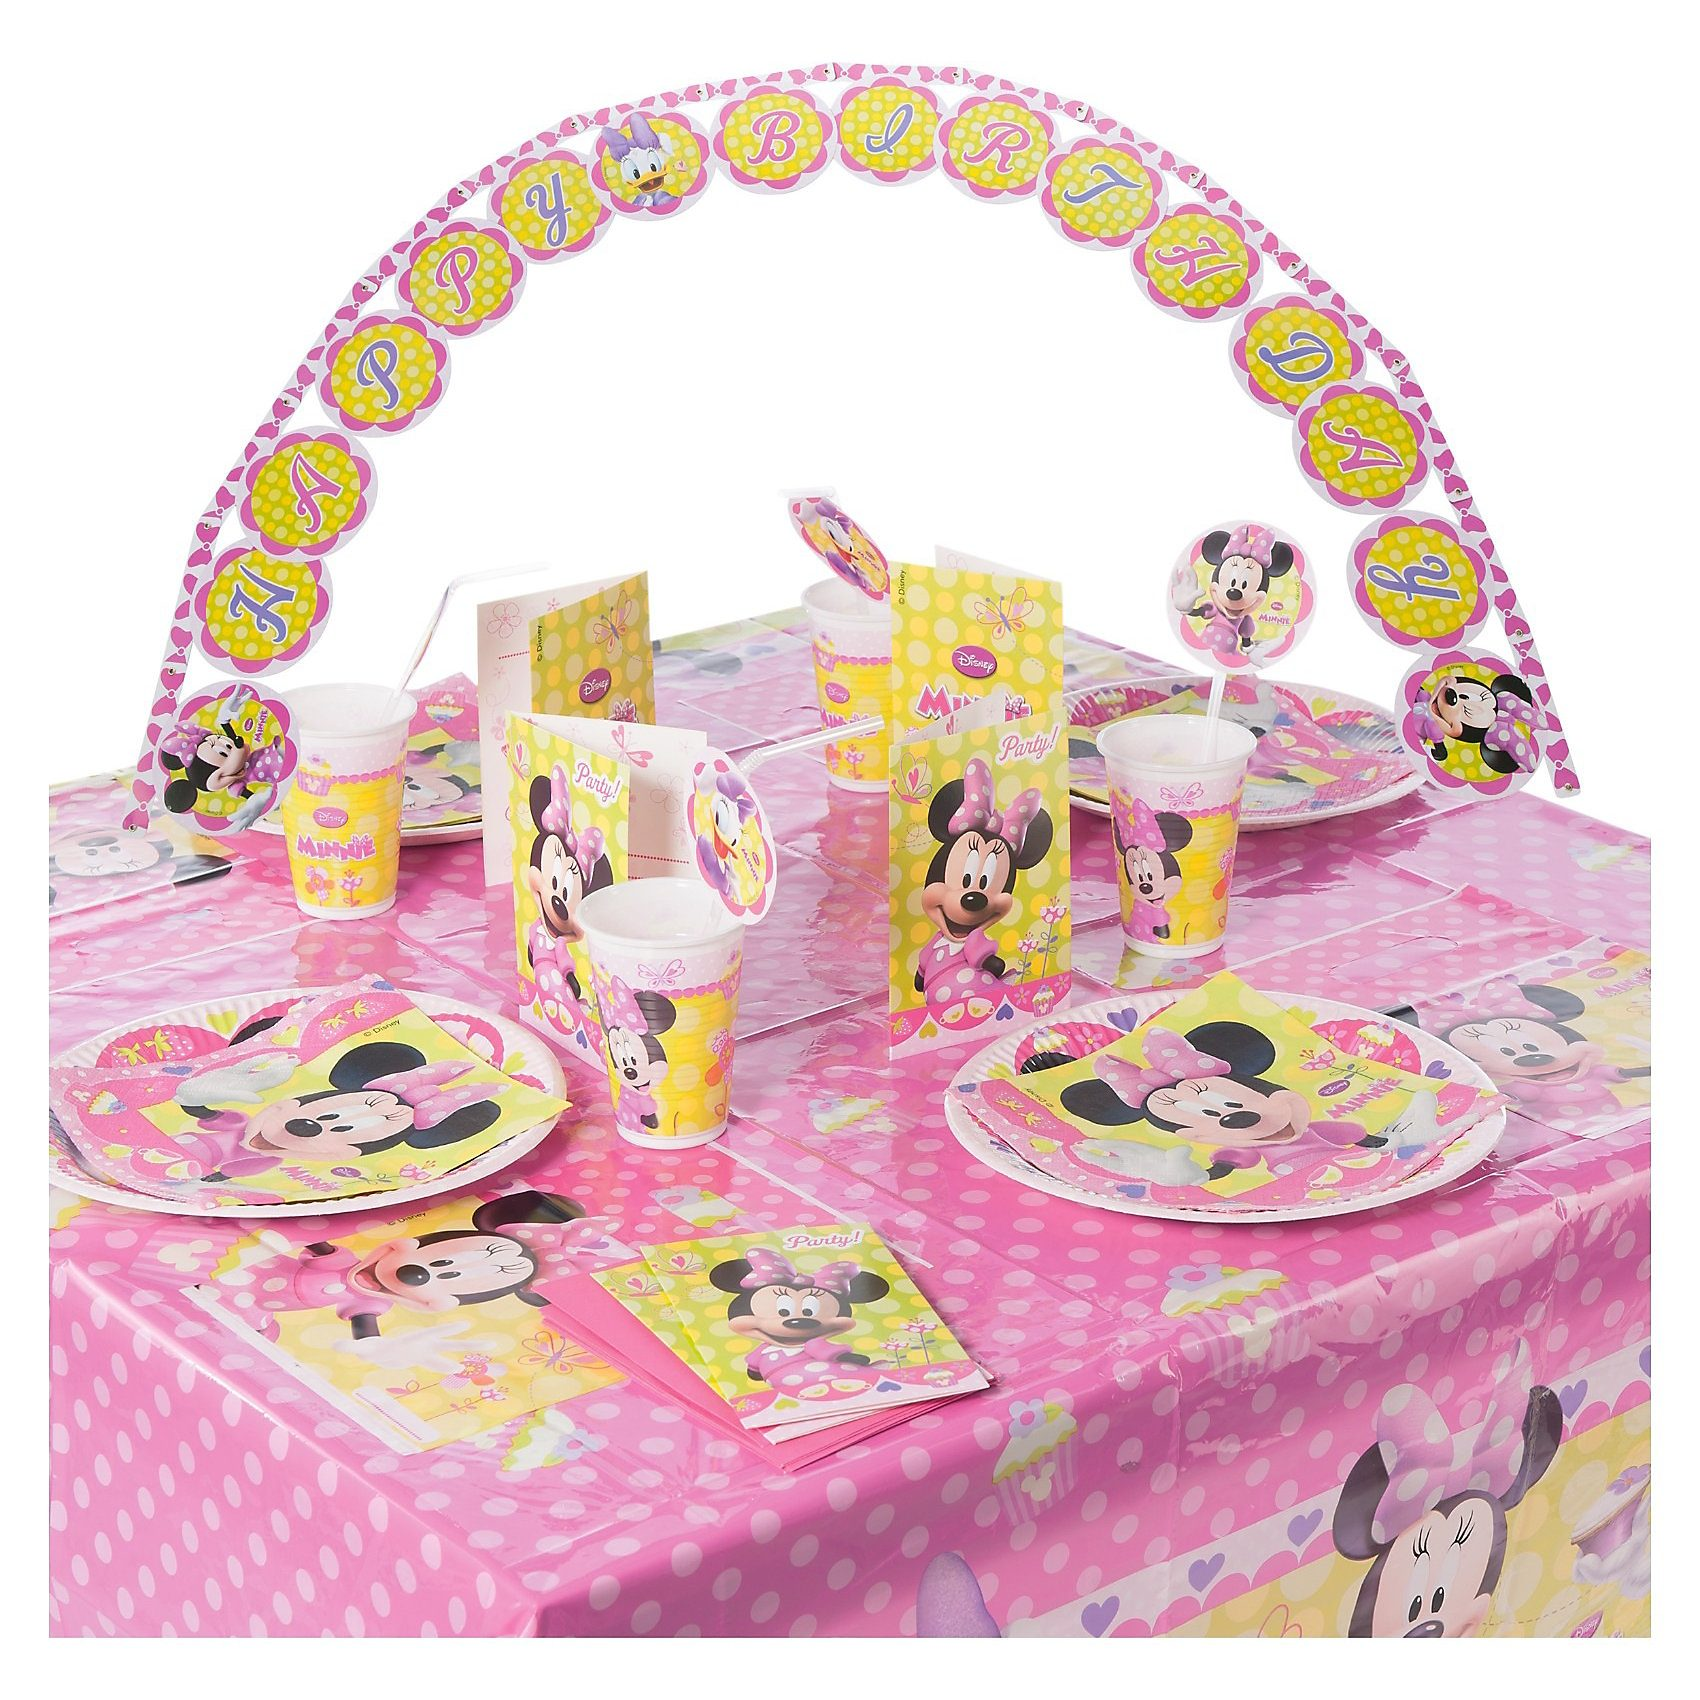 Procos Partyset Minnie Bow-Tique 56-tlg.